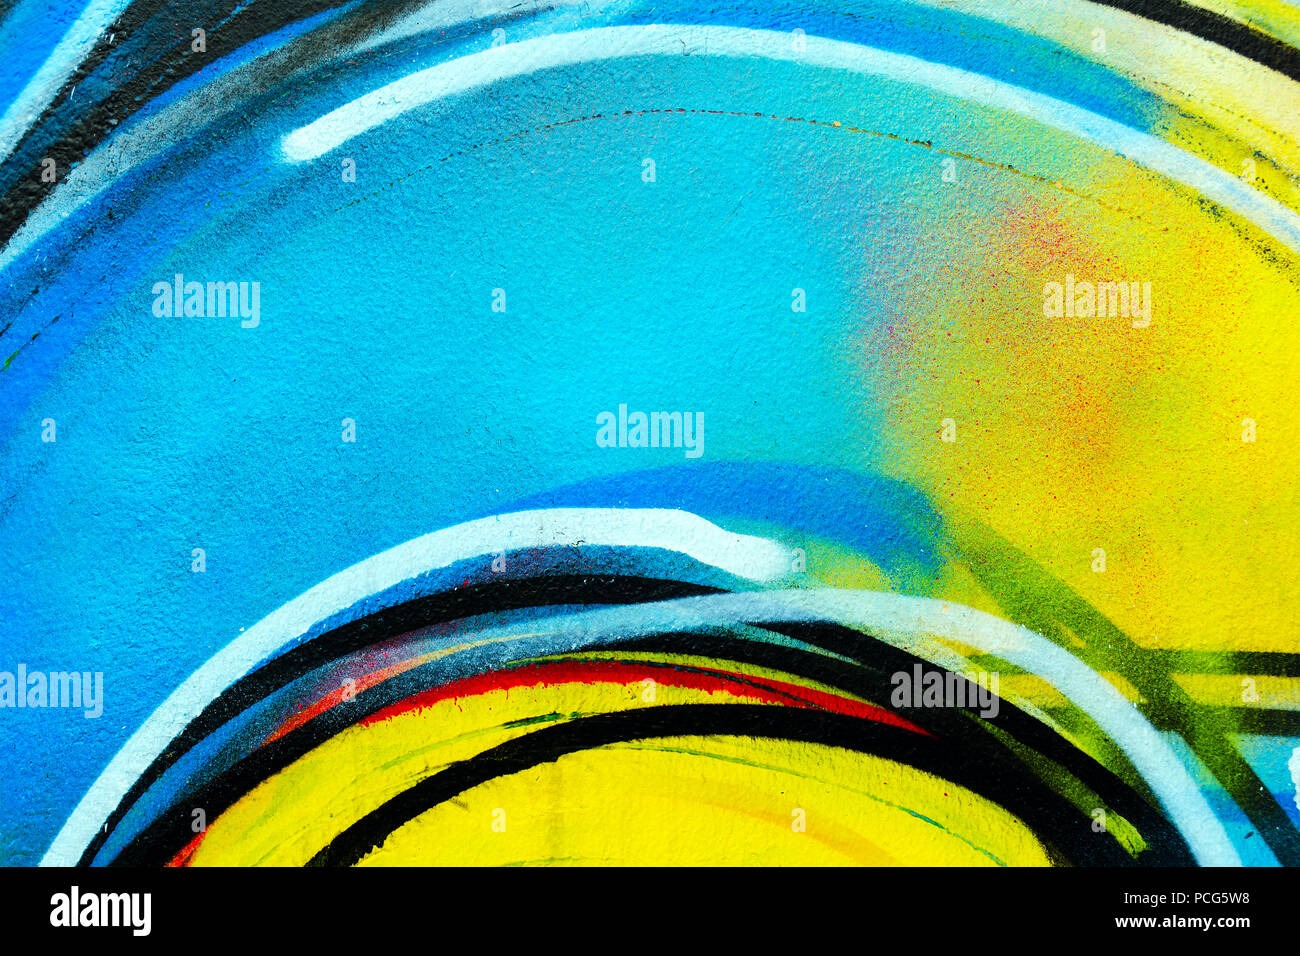 Urban wall -  bright colorful backdrop. Graffiti closeup. Abstract street art spray paint background. Wide photo for web site slider. - Stock Image